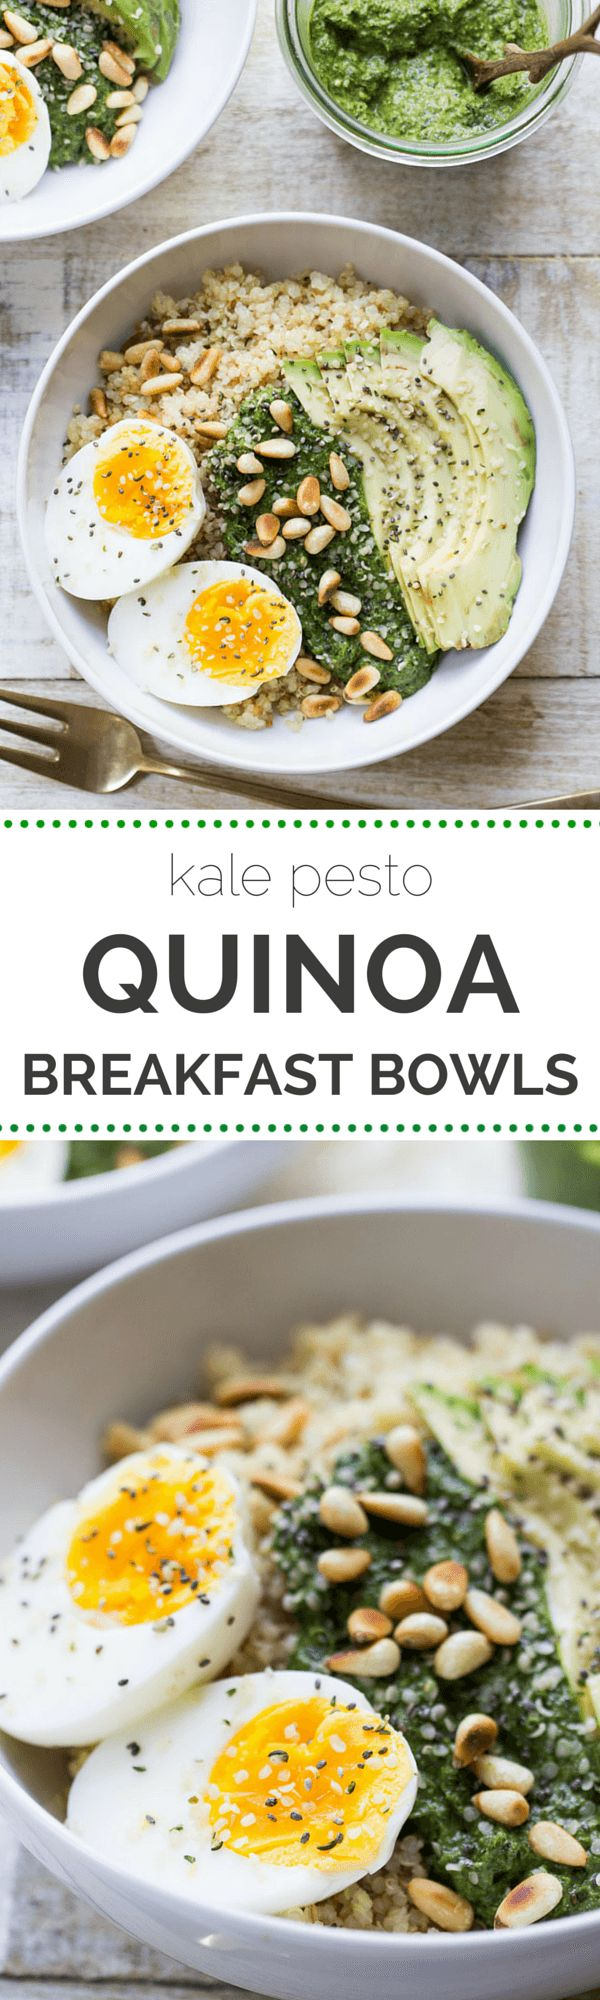 Phase 3 Savory Pesto Quinoa Breakfast Bowls  A Healthy Breakfast Packed  Full Of Nutritional Superstars